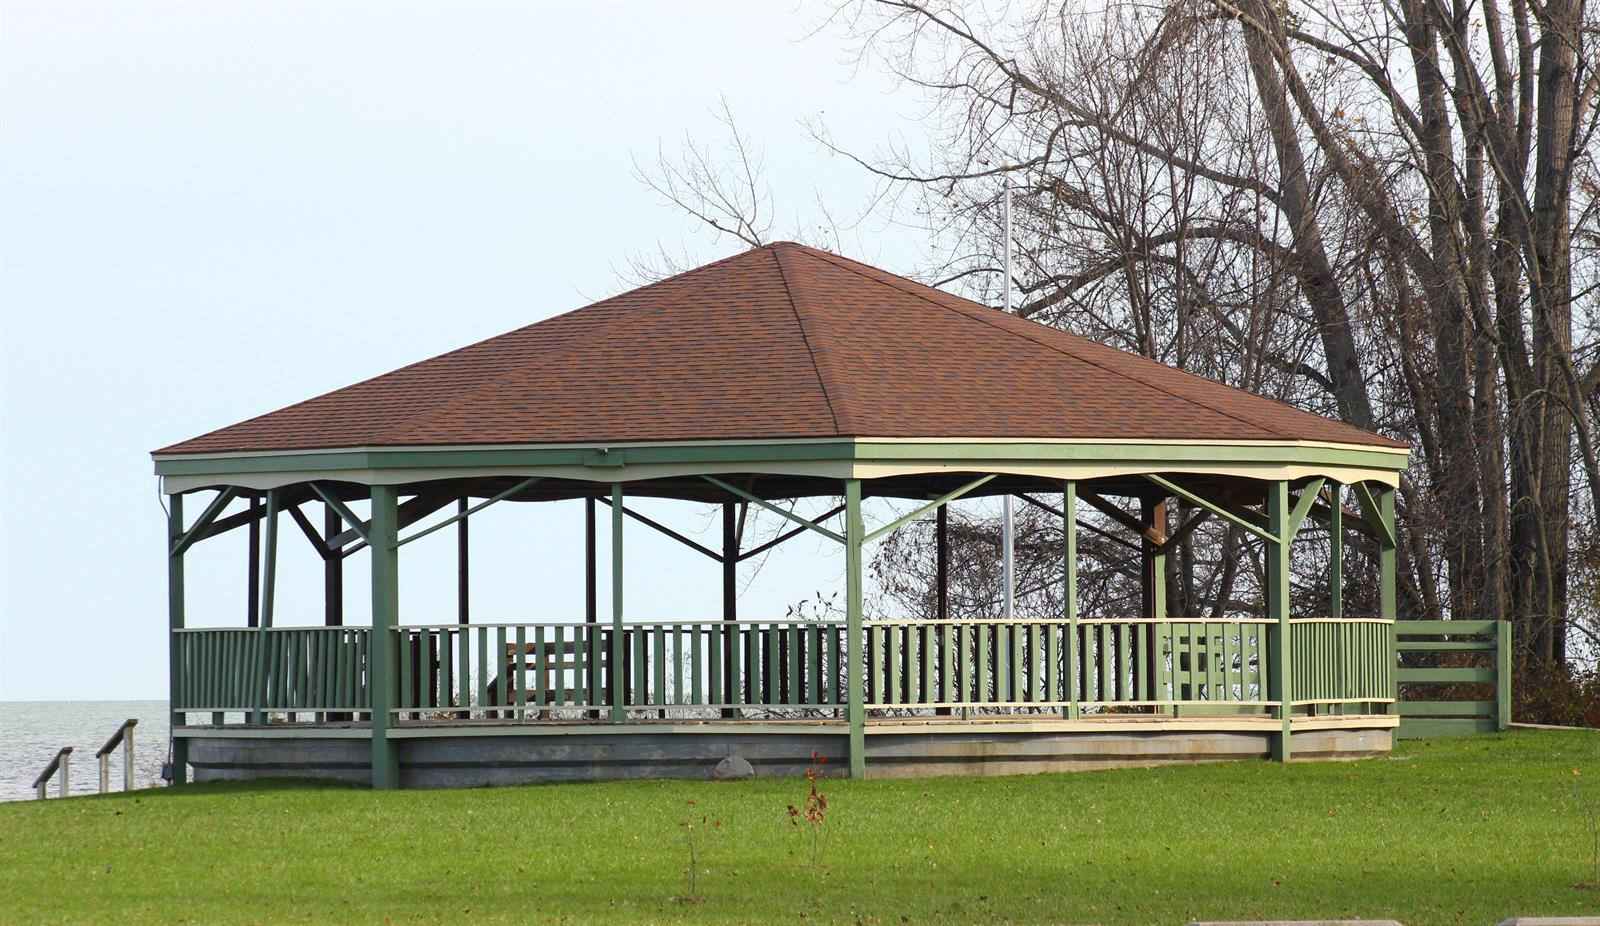 Picture: Piconning Park gazebo